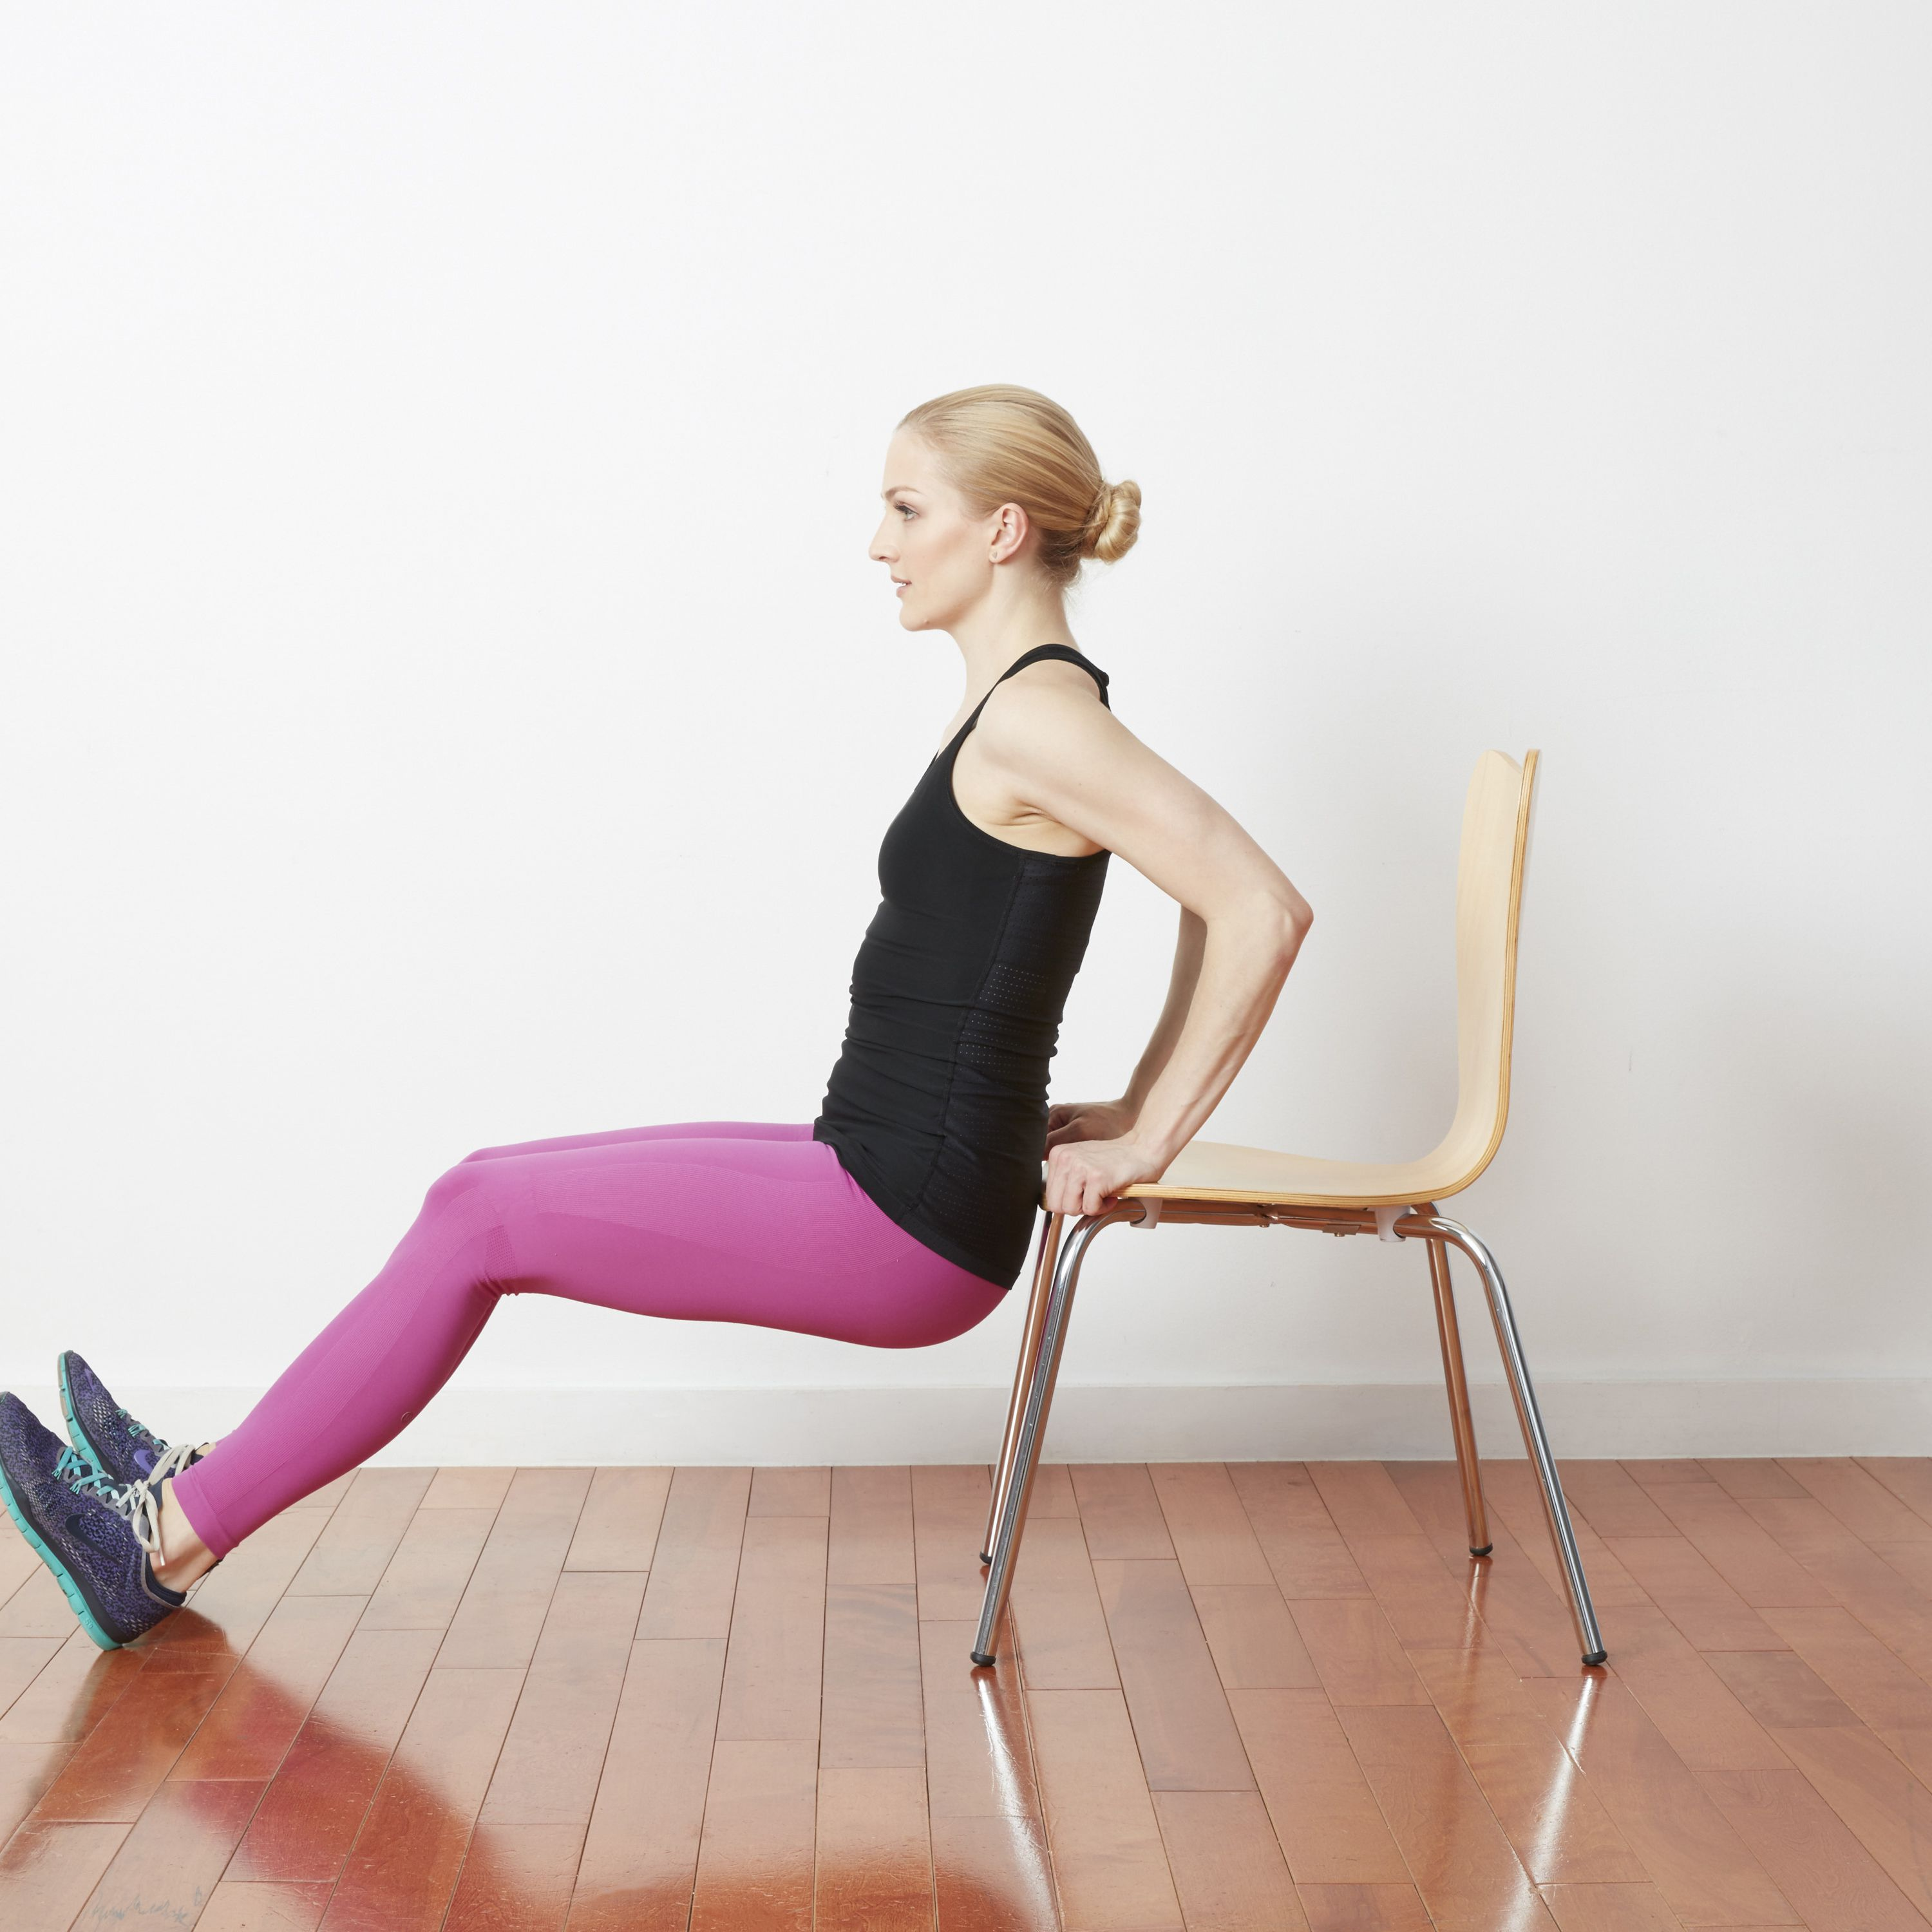 Bench Dips For Triceps